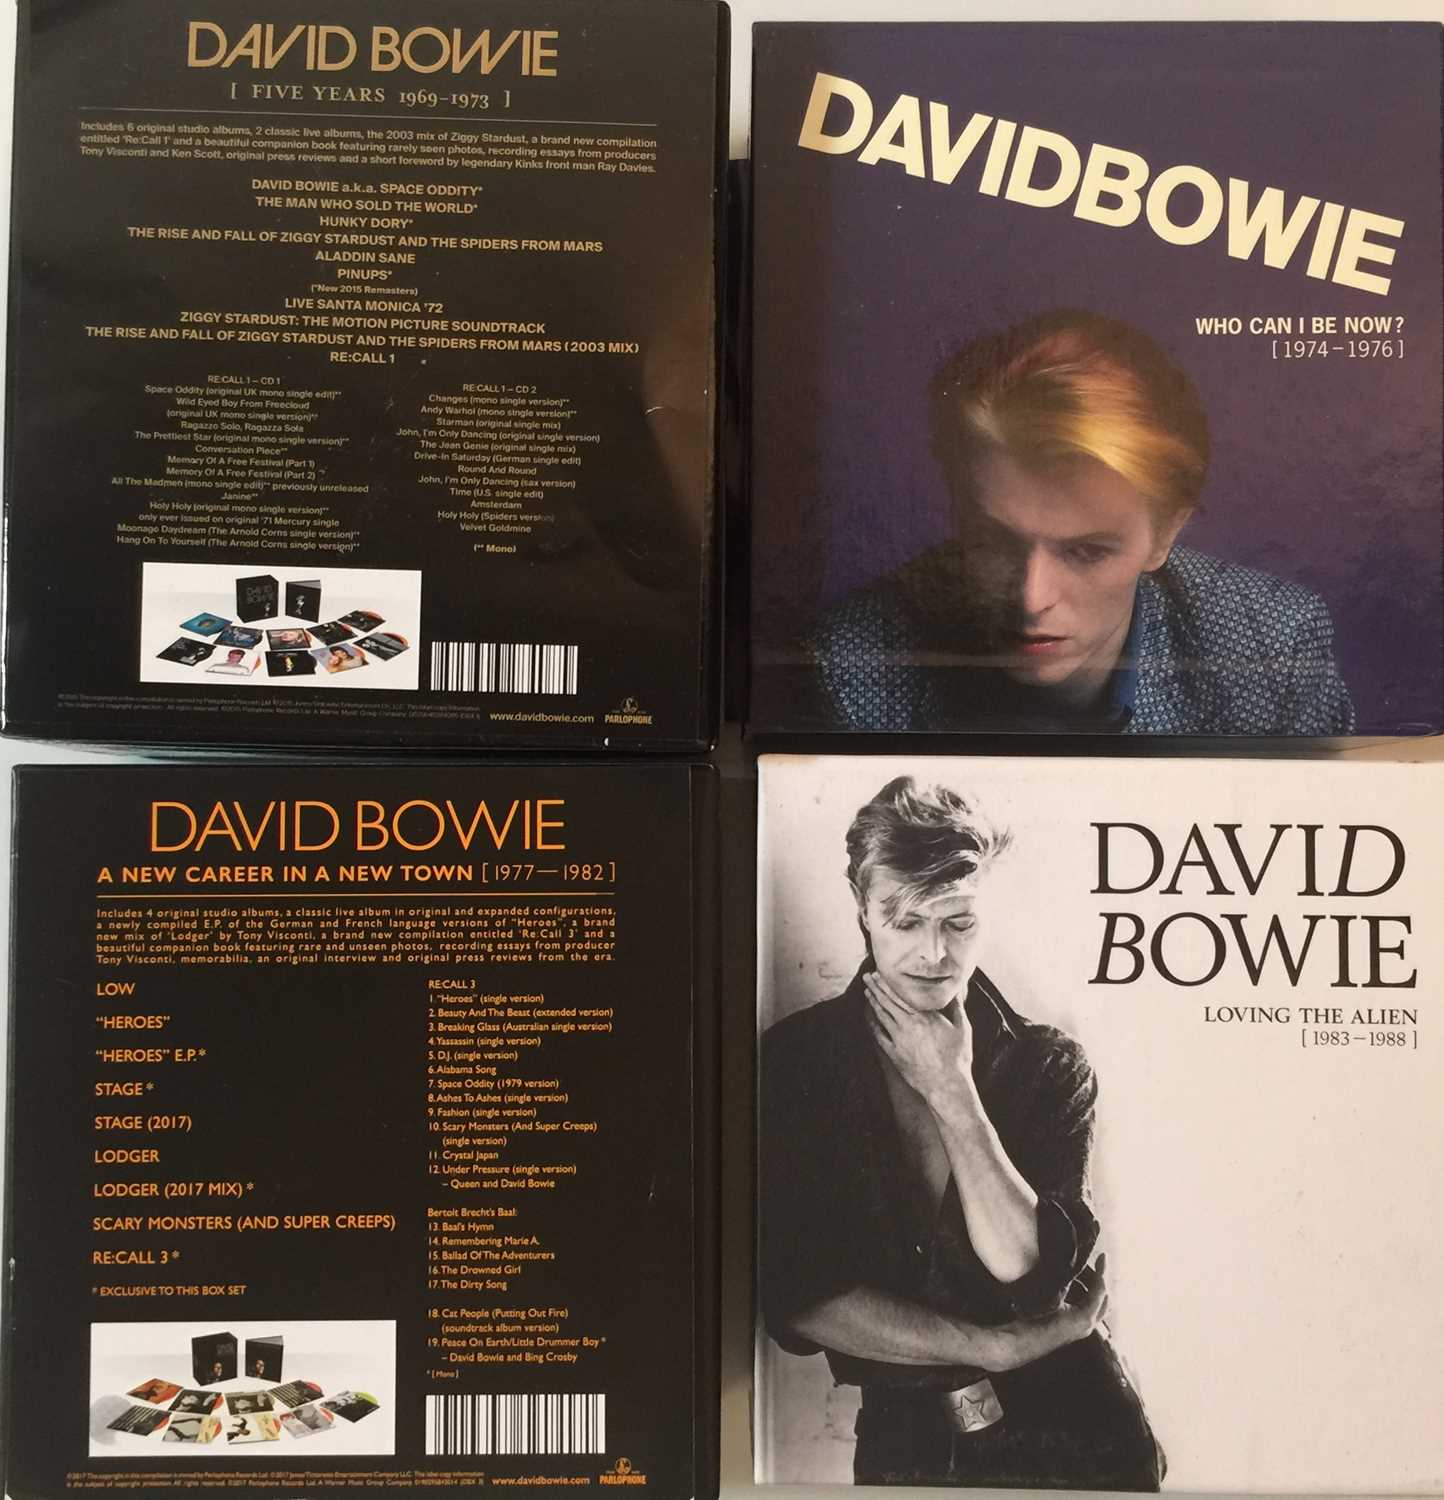 DAVID BOWIE - LIMITED EDITION CD BOX SET RELEASES - Image 4 of 8